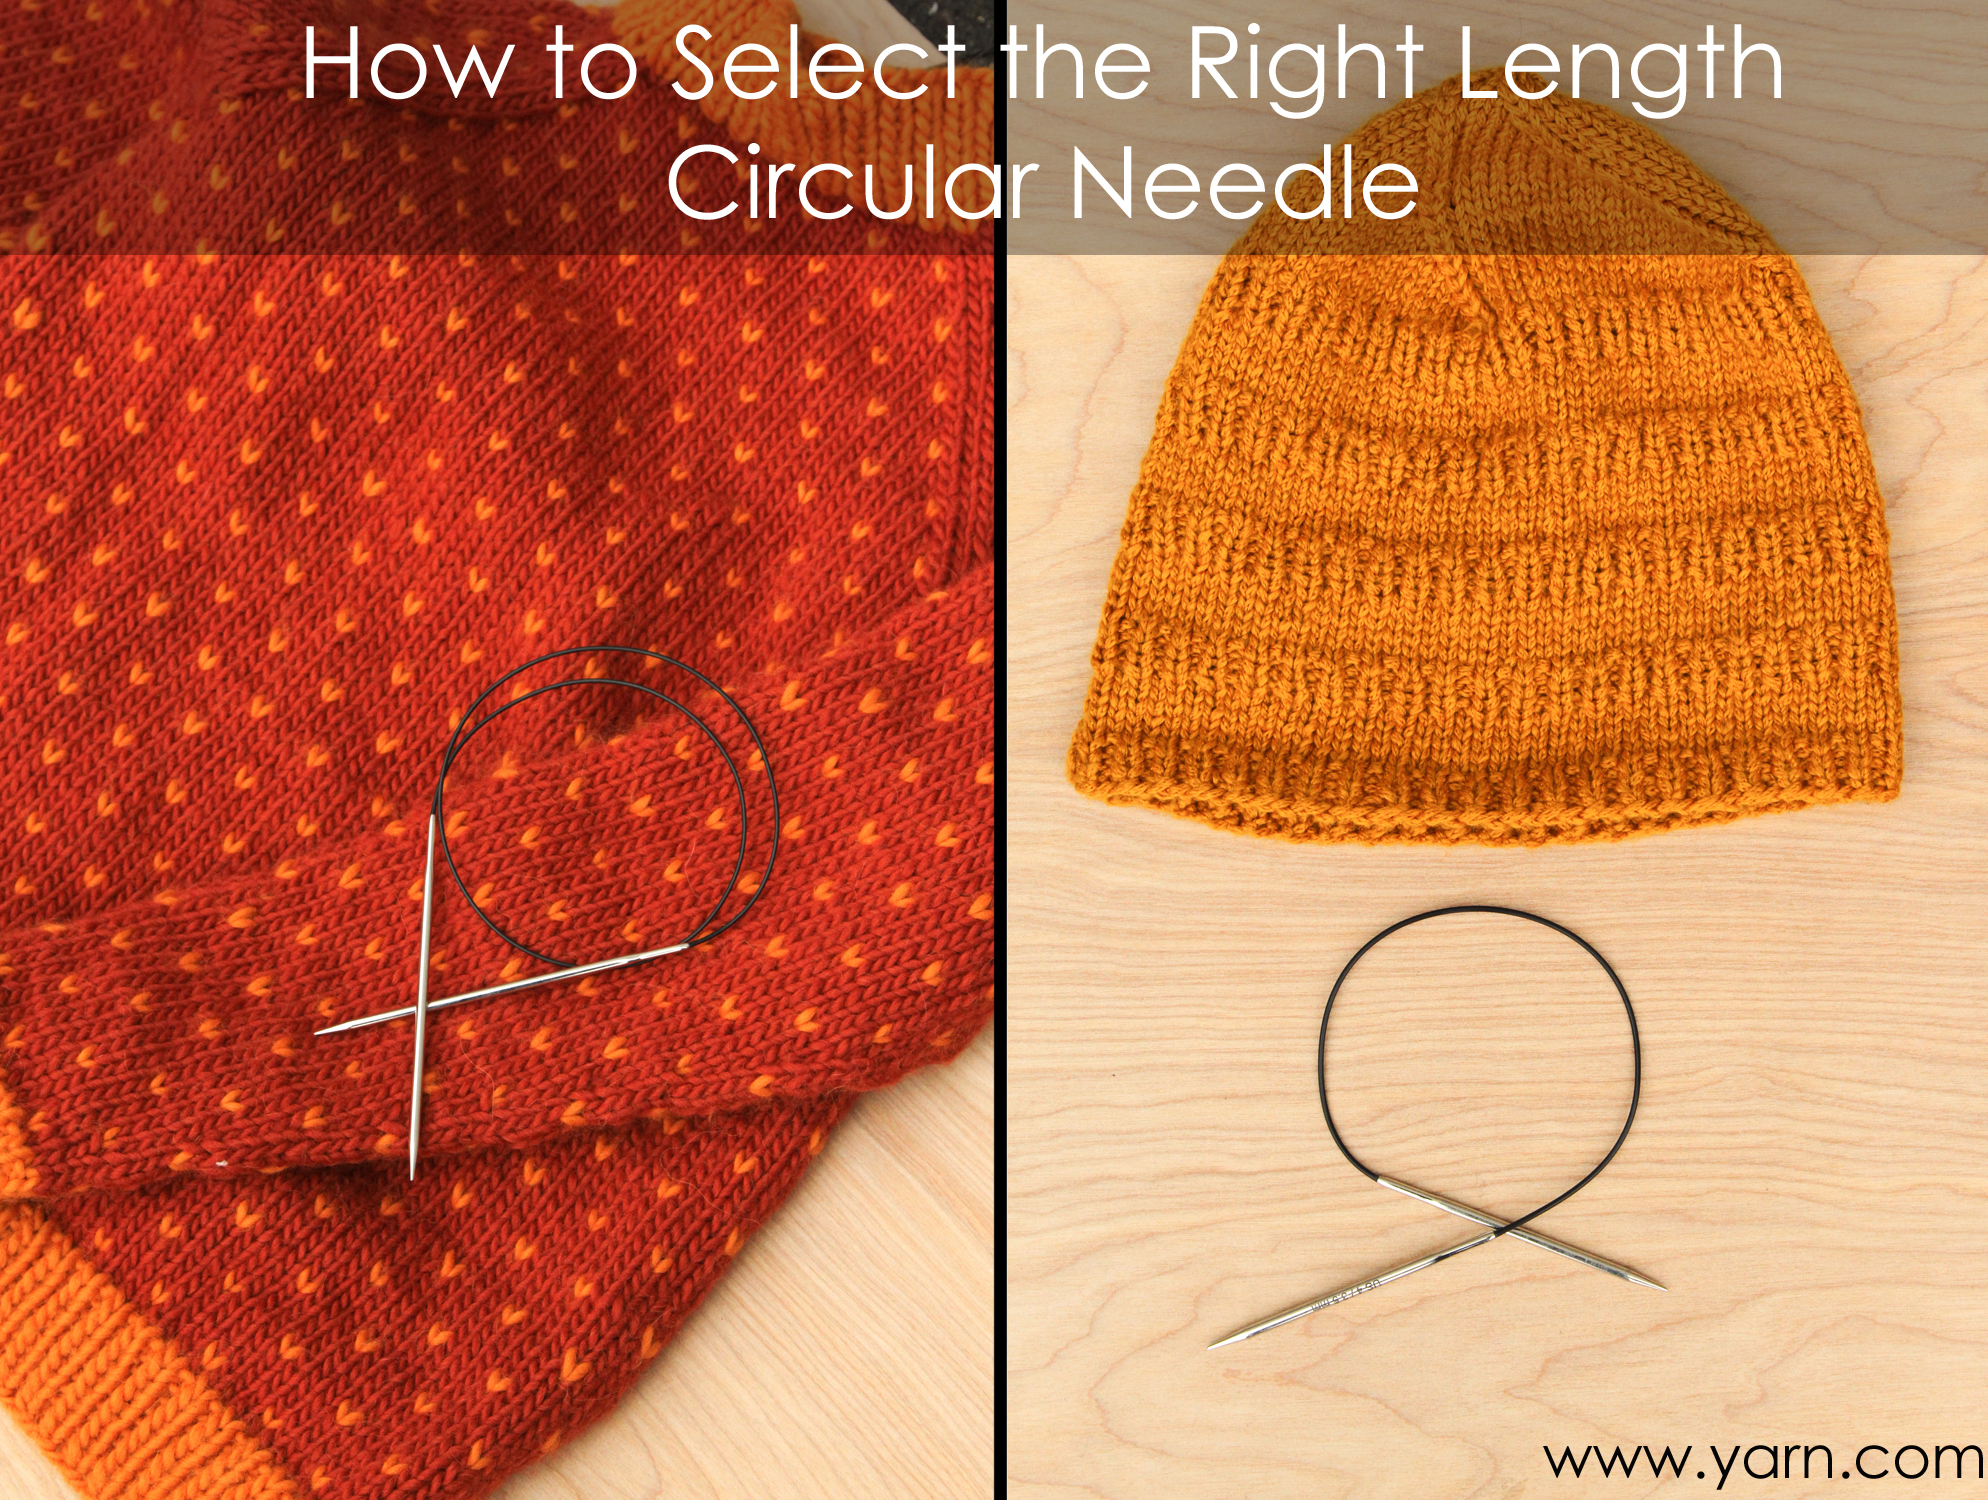 How to Select the Right Length Circular Needle